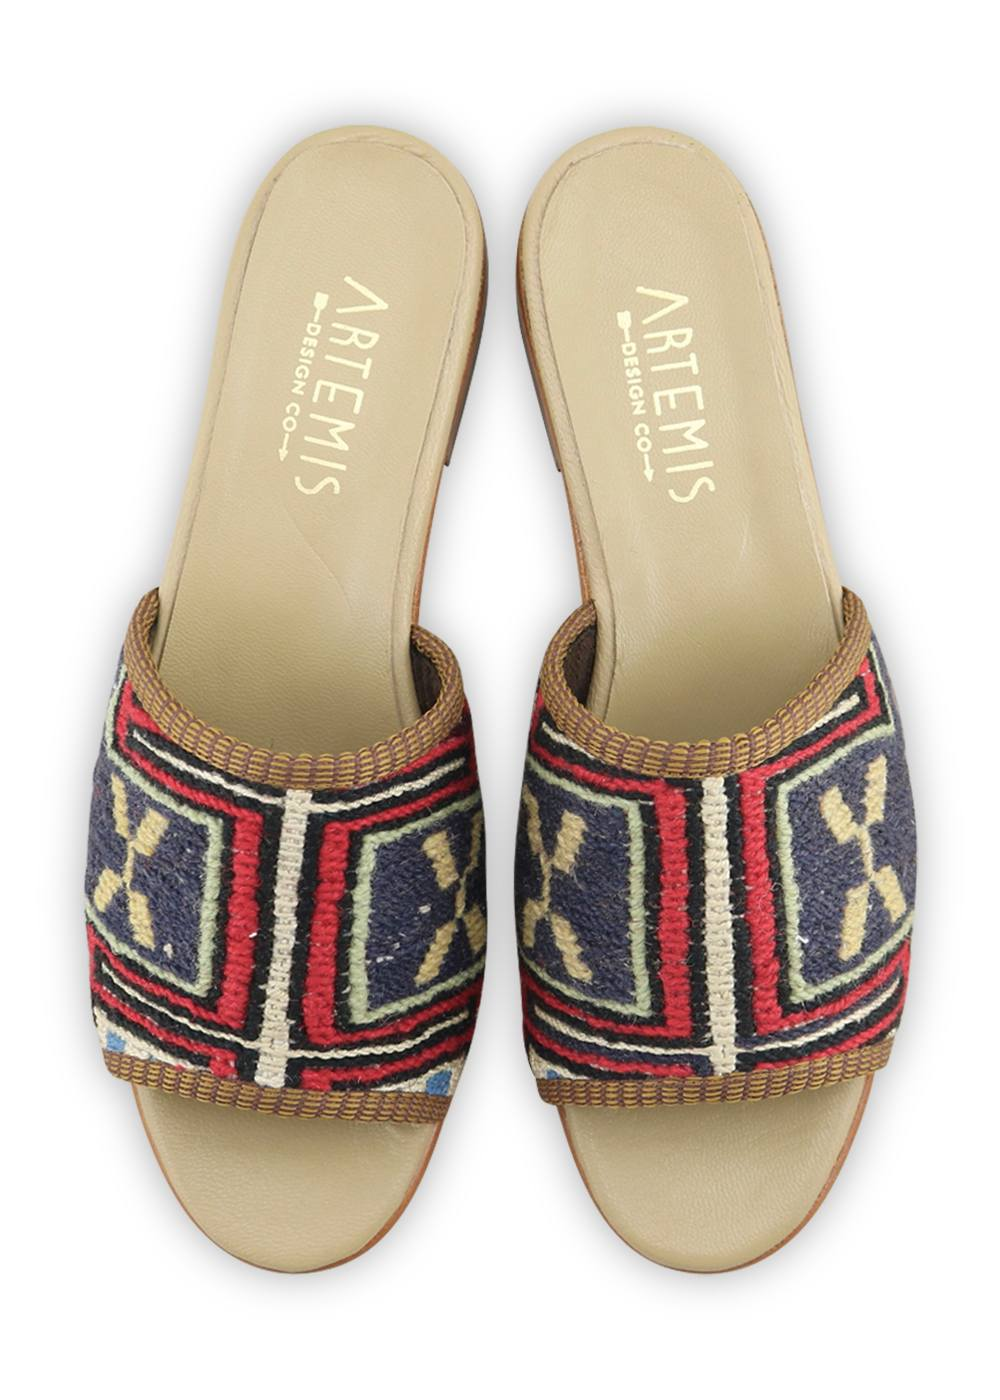 Archived Women's - Women's Sumak Kilim Sandals - Size 39